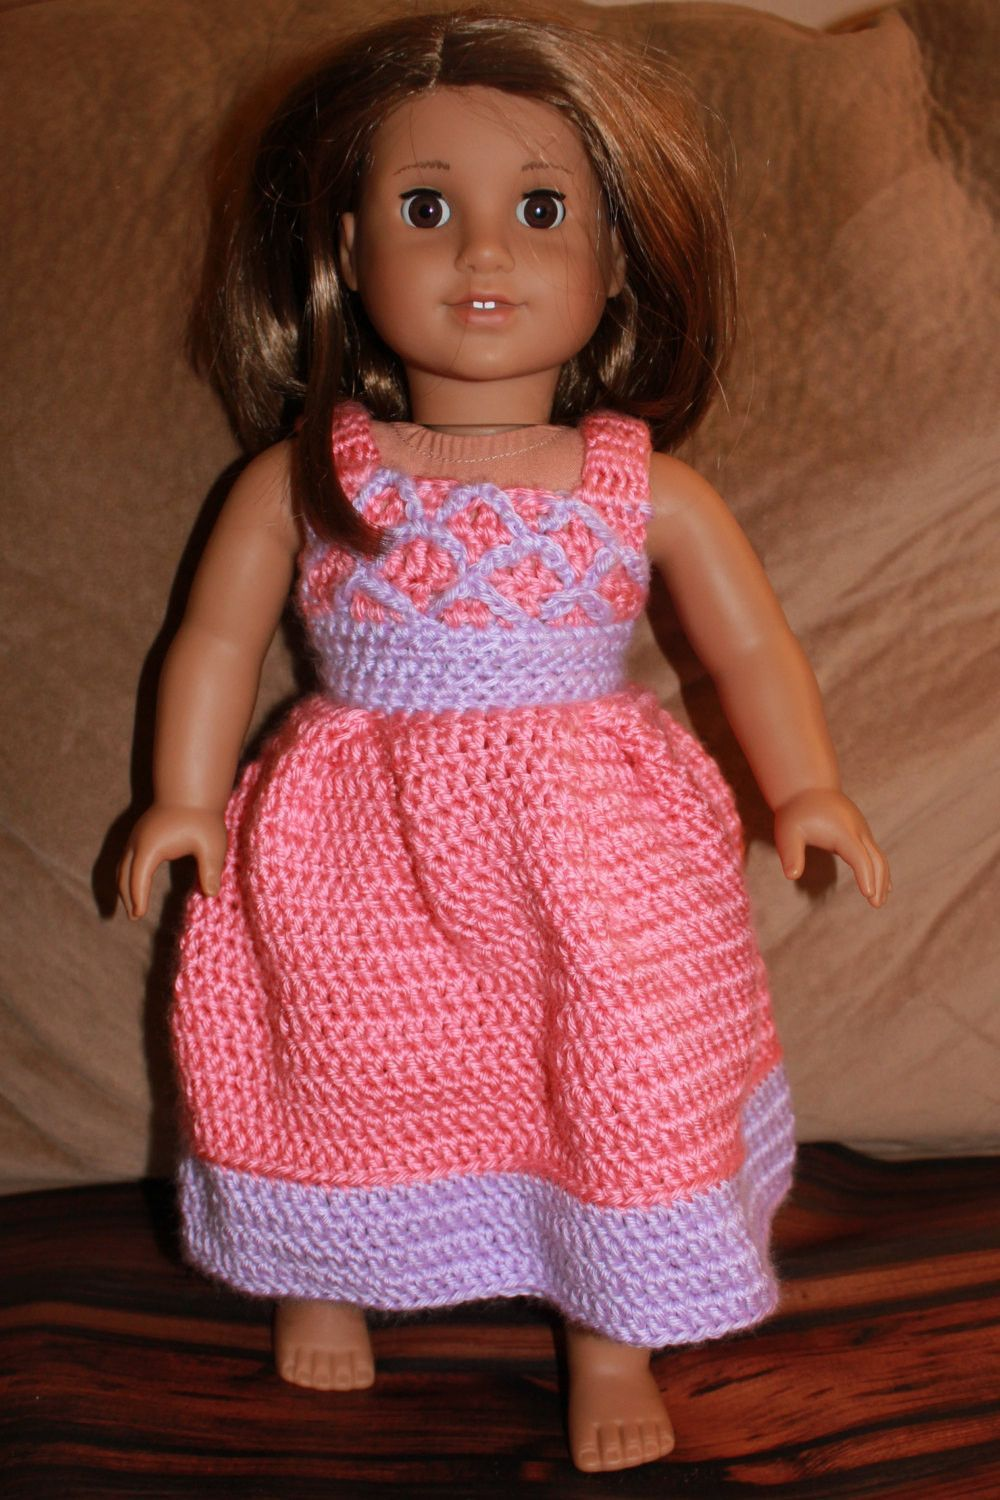 The beautiful crocheted doll dress has a stunning design. This would be adorable to dress up any 18 inch doll. It can be made in a variety of colors. If you have any questions, or would like a custom